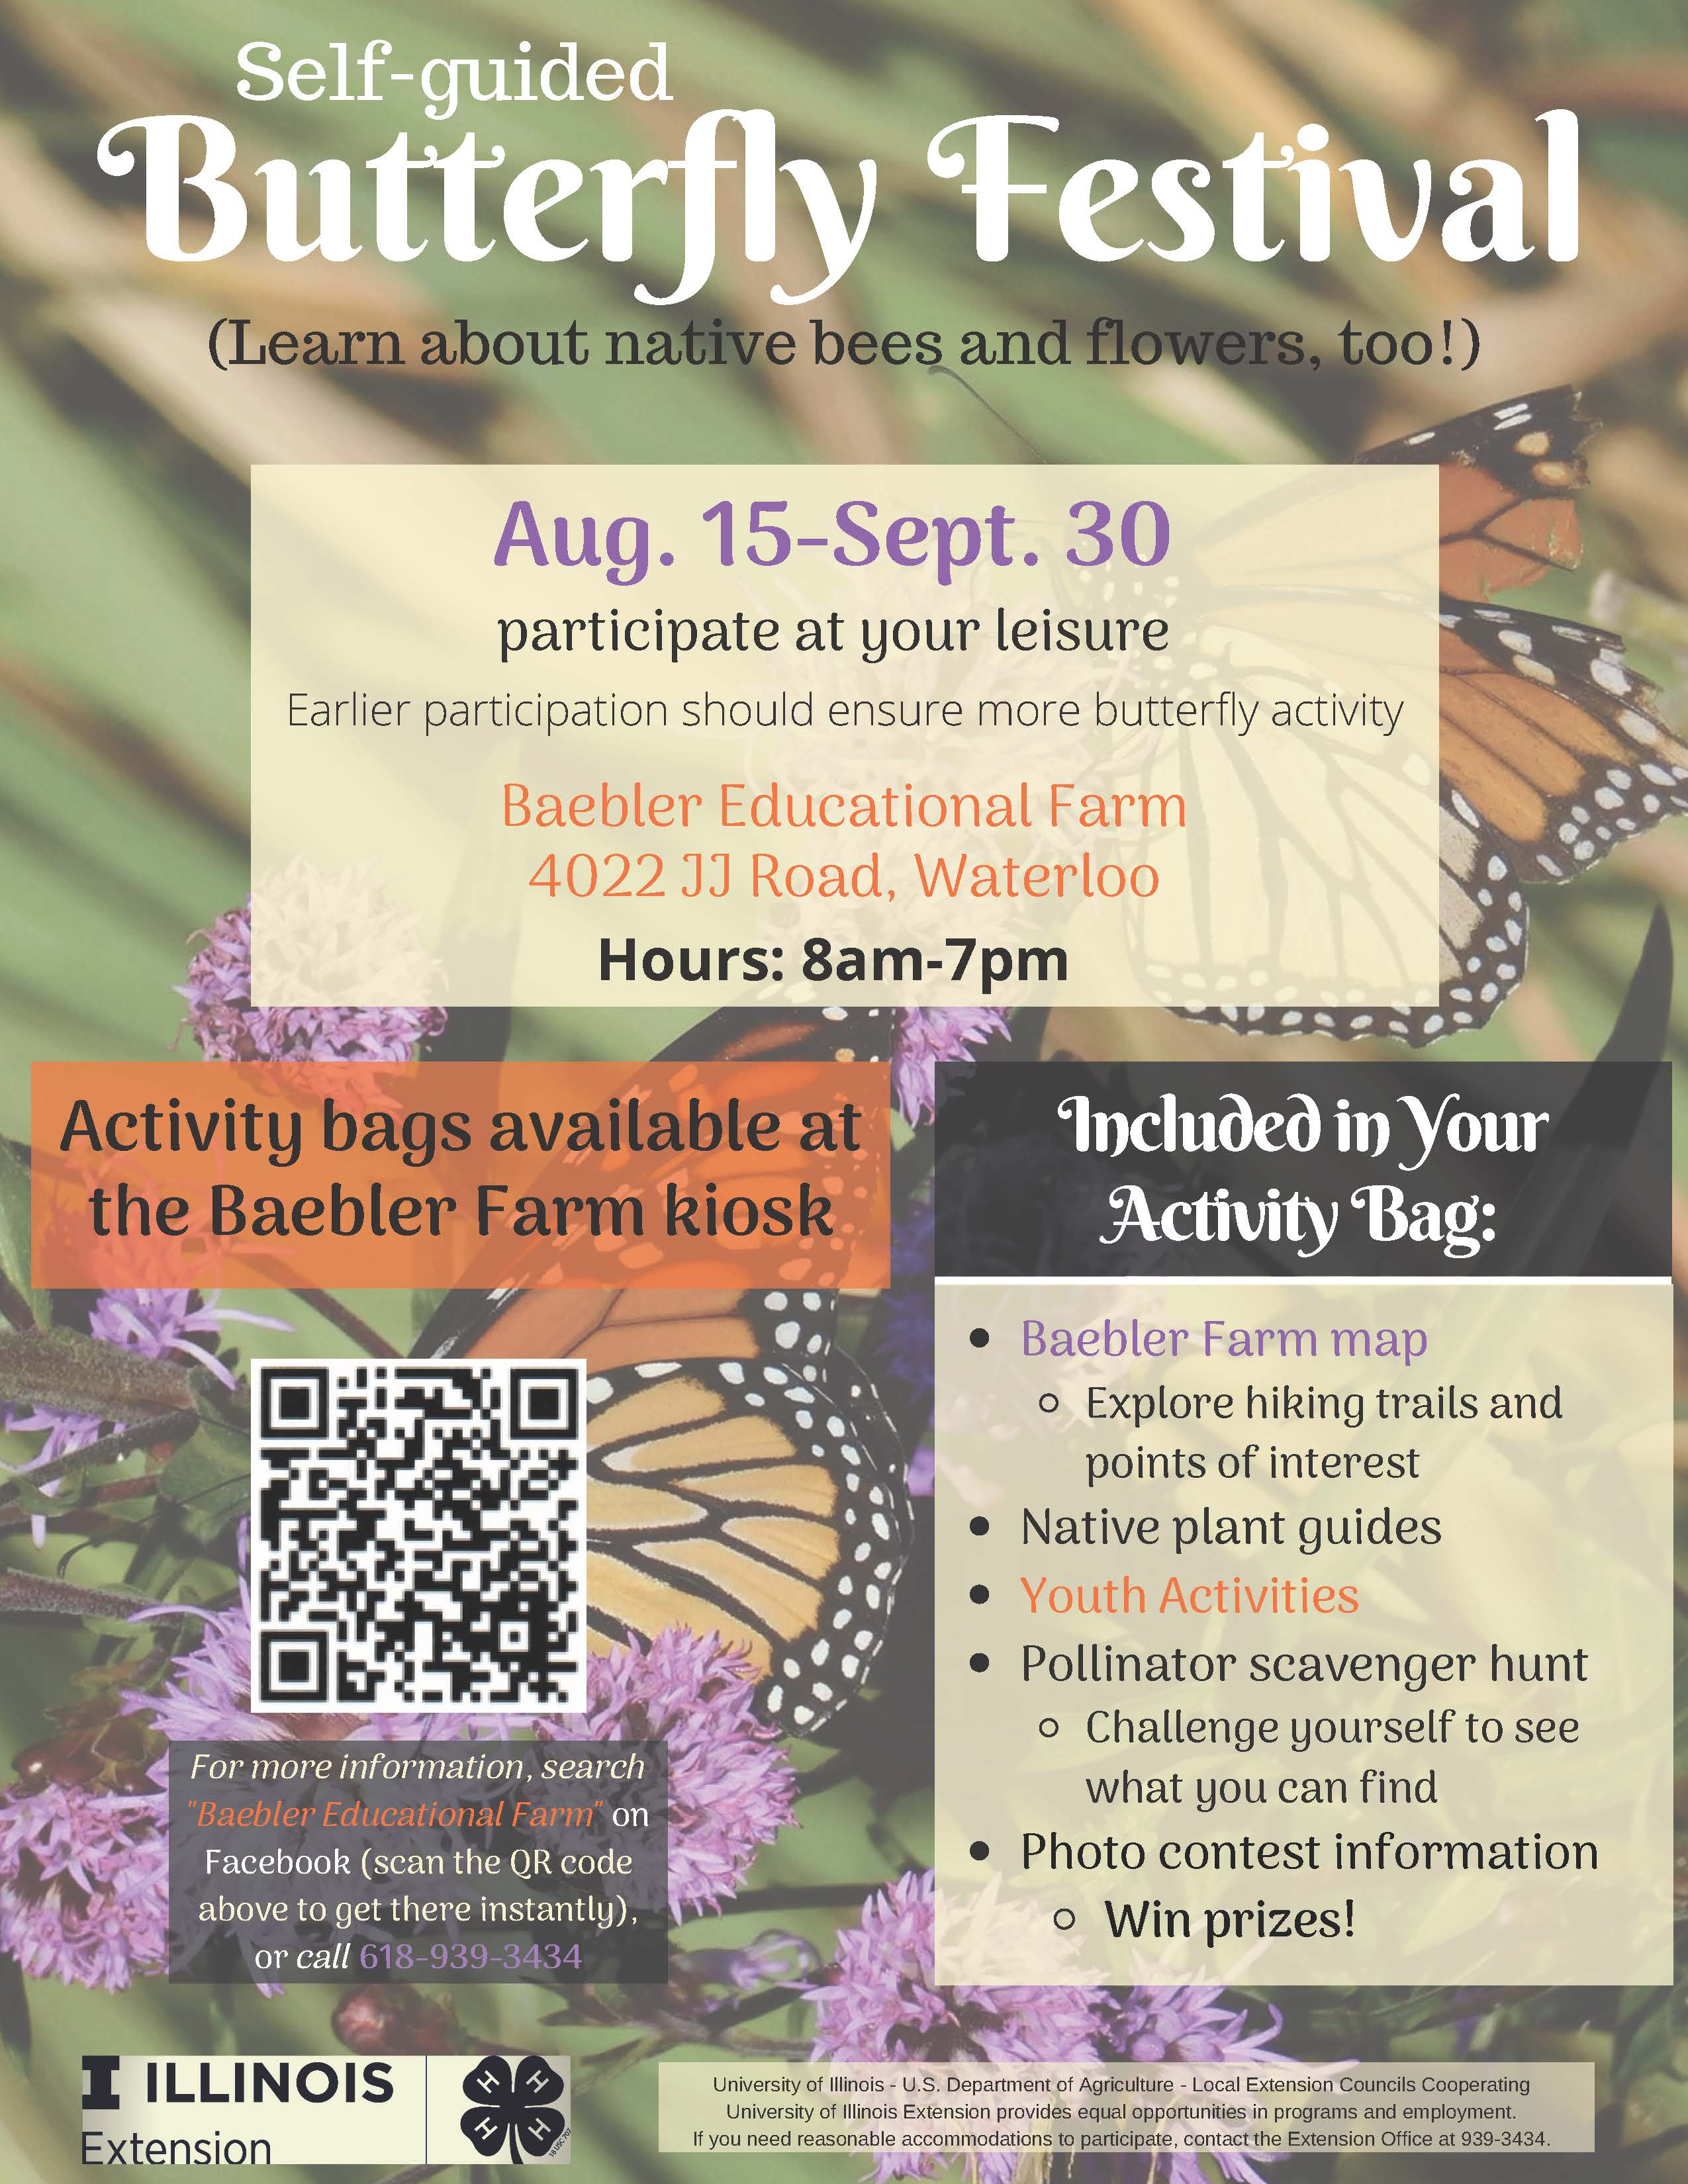 Self-Guided Butterfly Festival